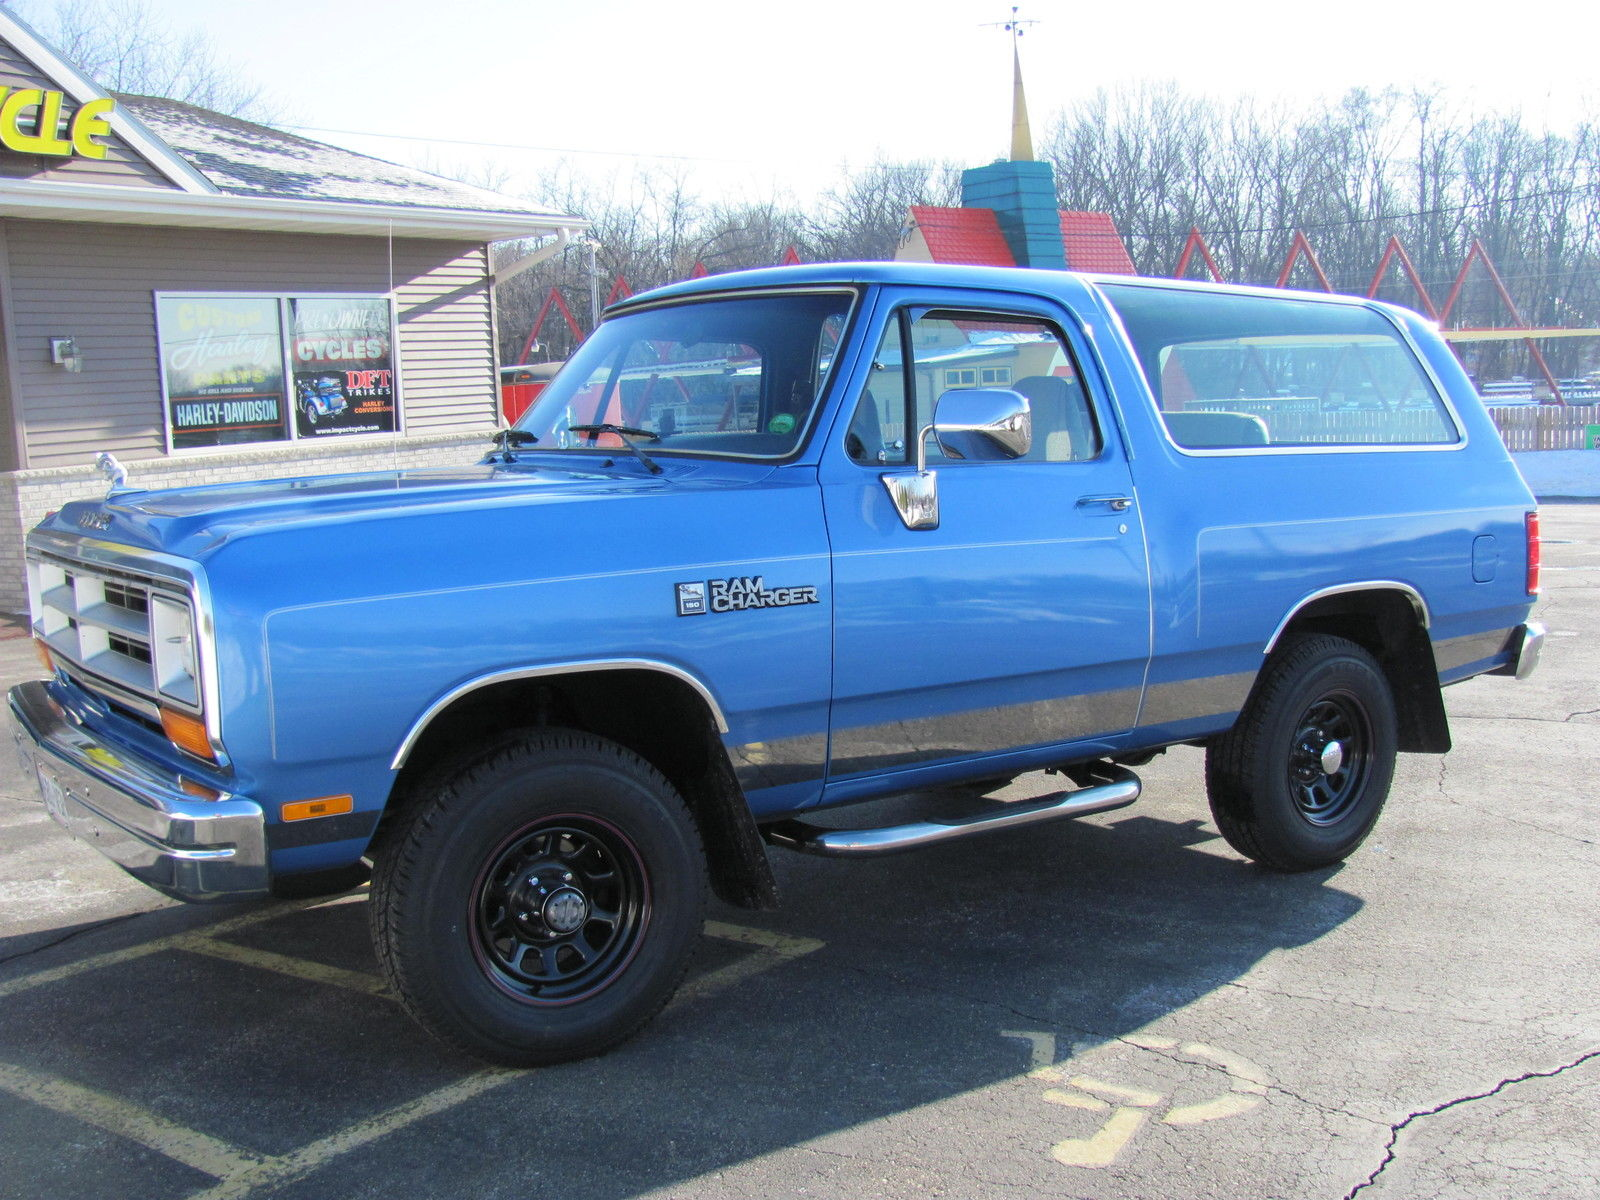 1990 Dodge Ramcharger 2 Owner Truly A Rare Find For Sale In Beloit Wisconsin United States For Sale Photos Technical Specifications Description